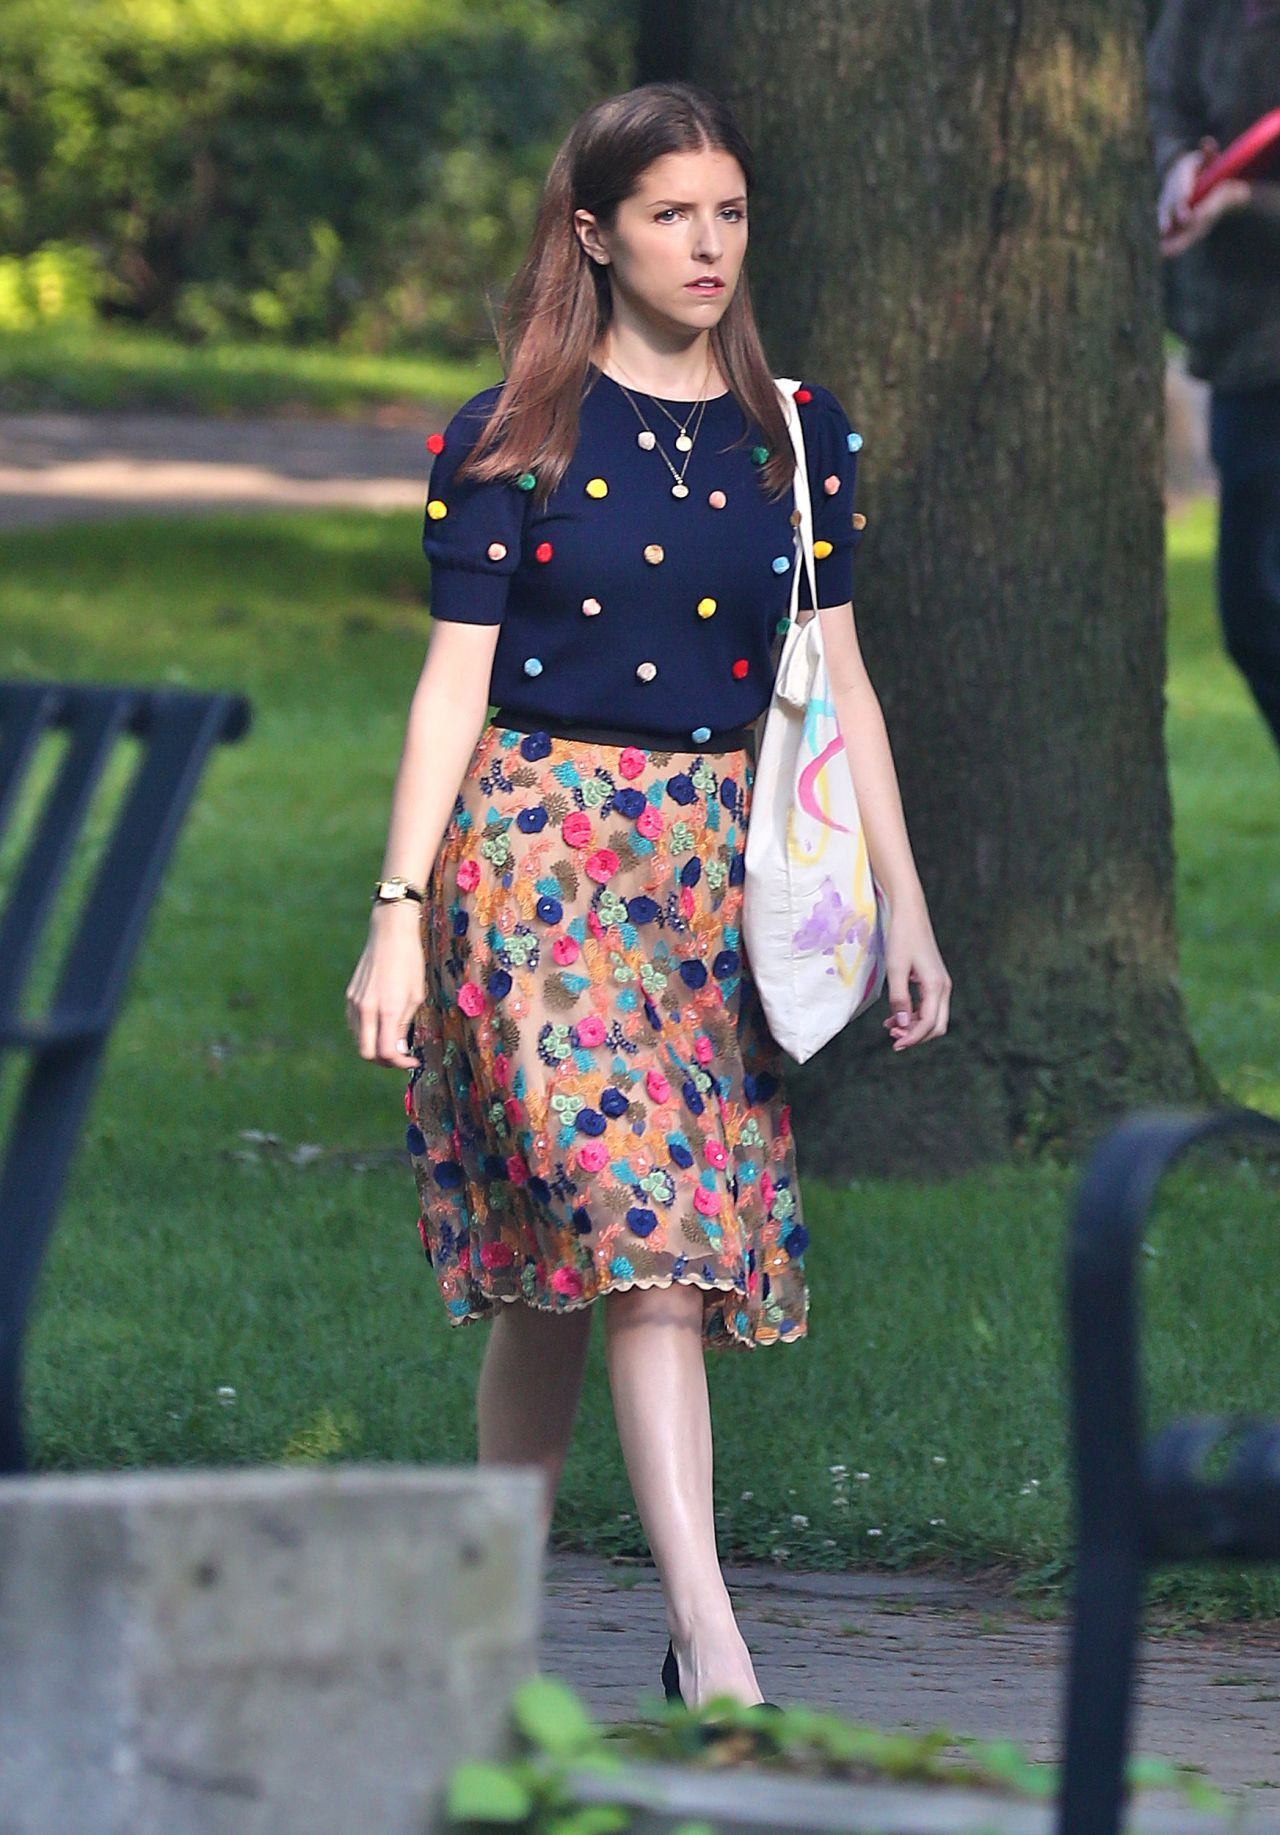 Anna Kendrick Quot A Simple Favor Quot Movie Set In Toronto 08